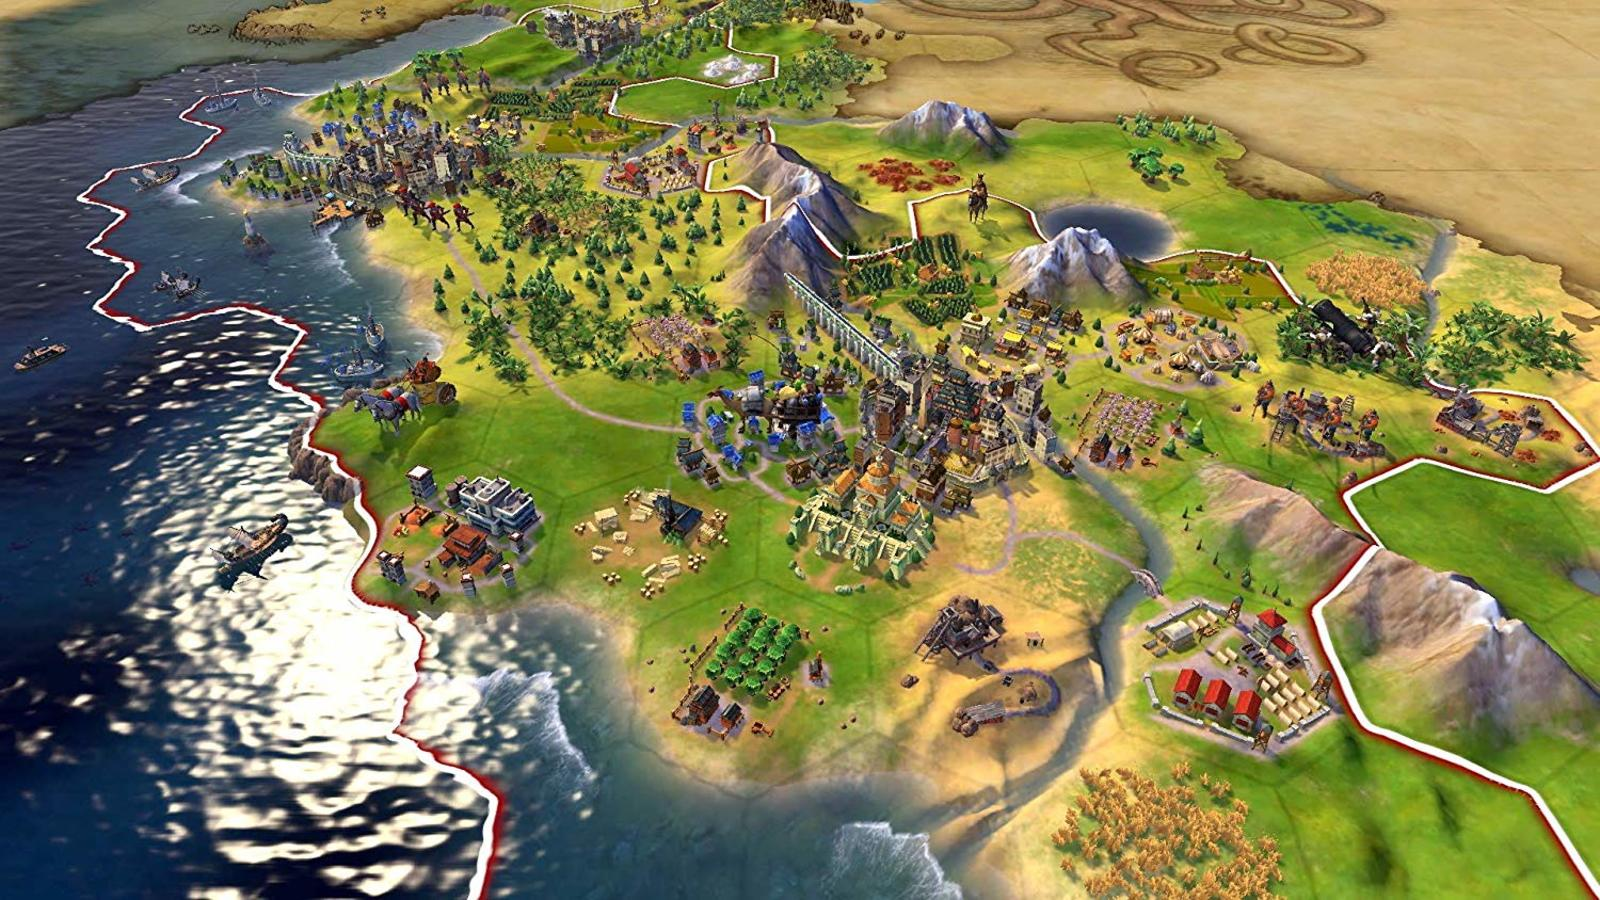 Civilization VI is the best strategy game on Nintendo Switch